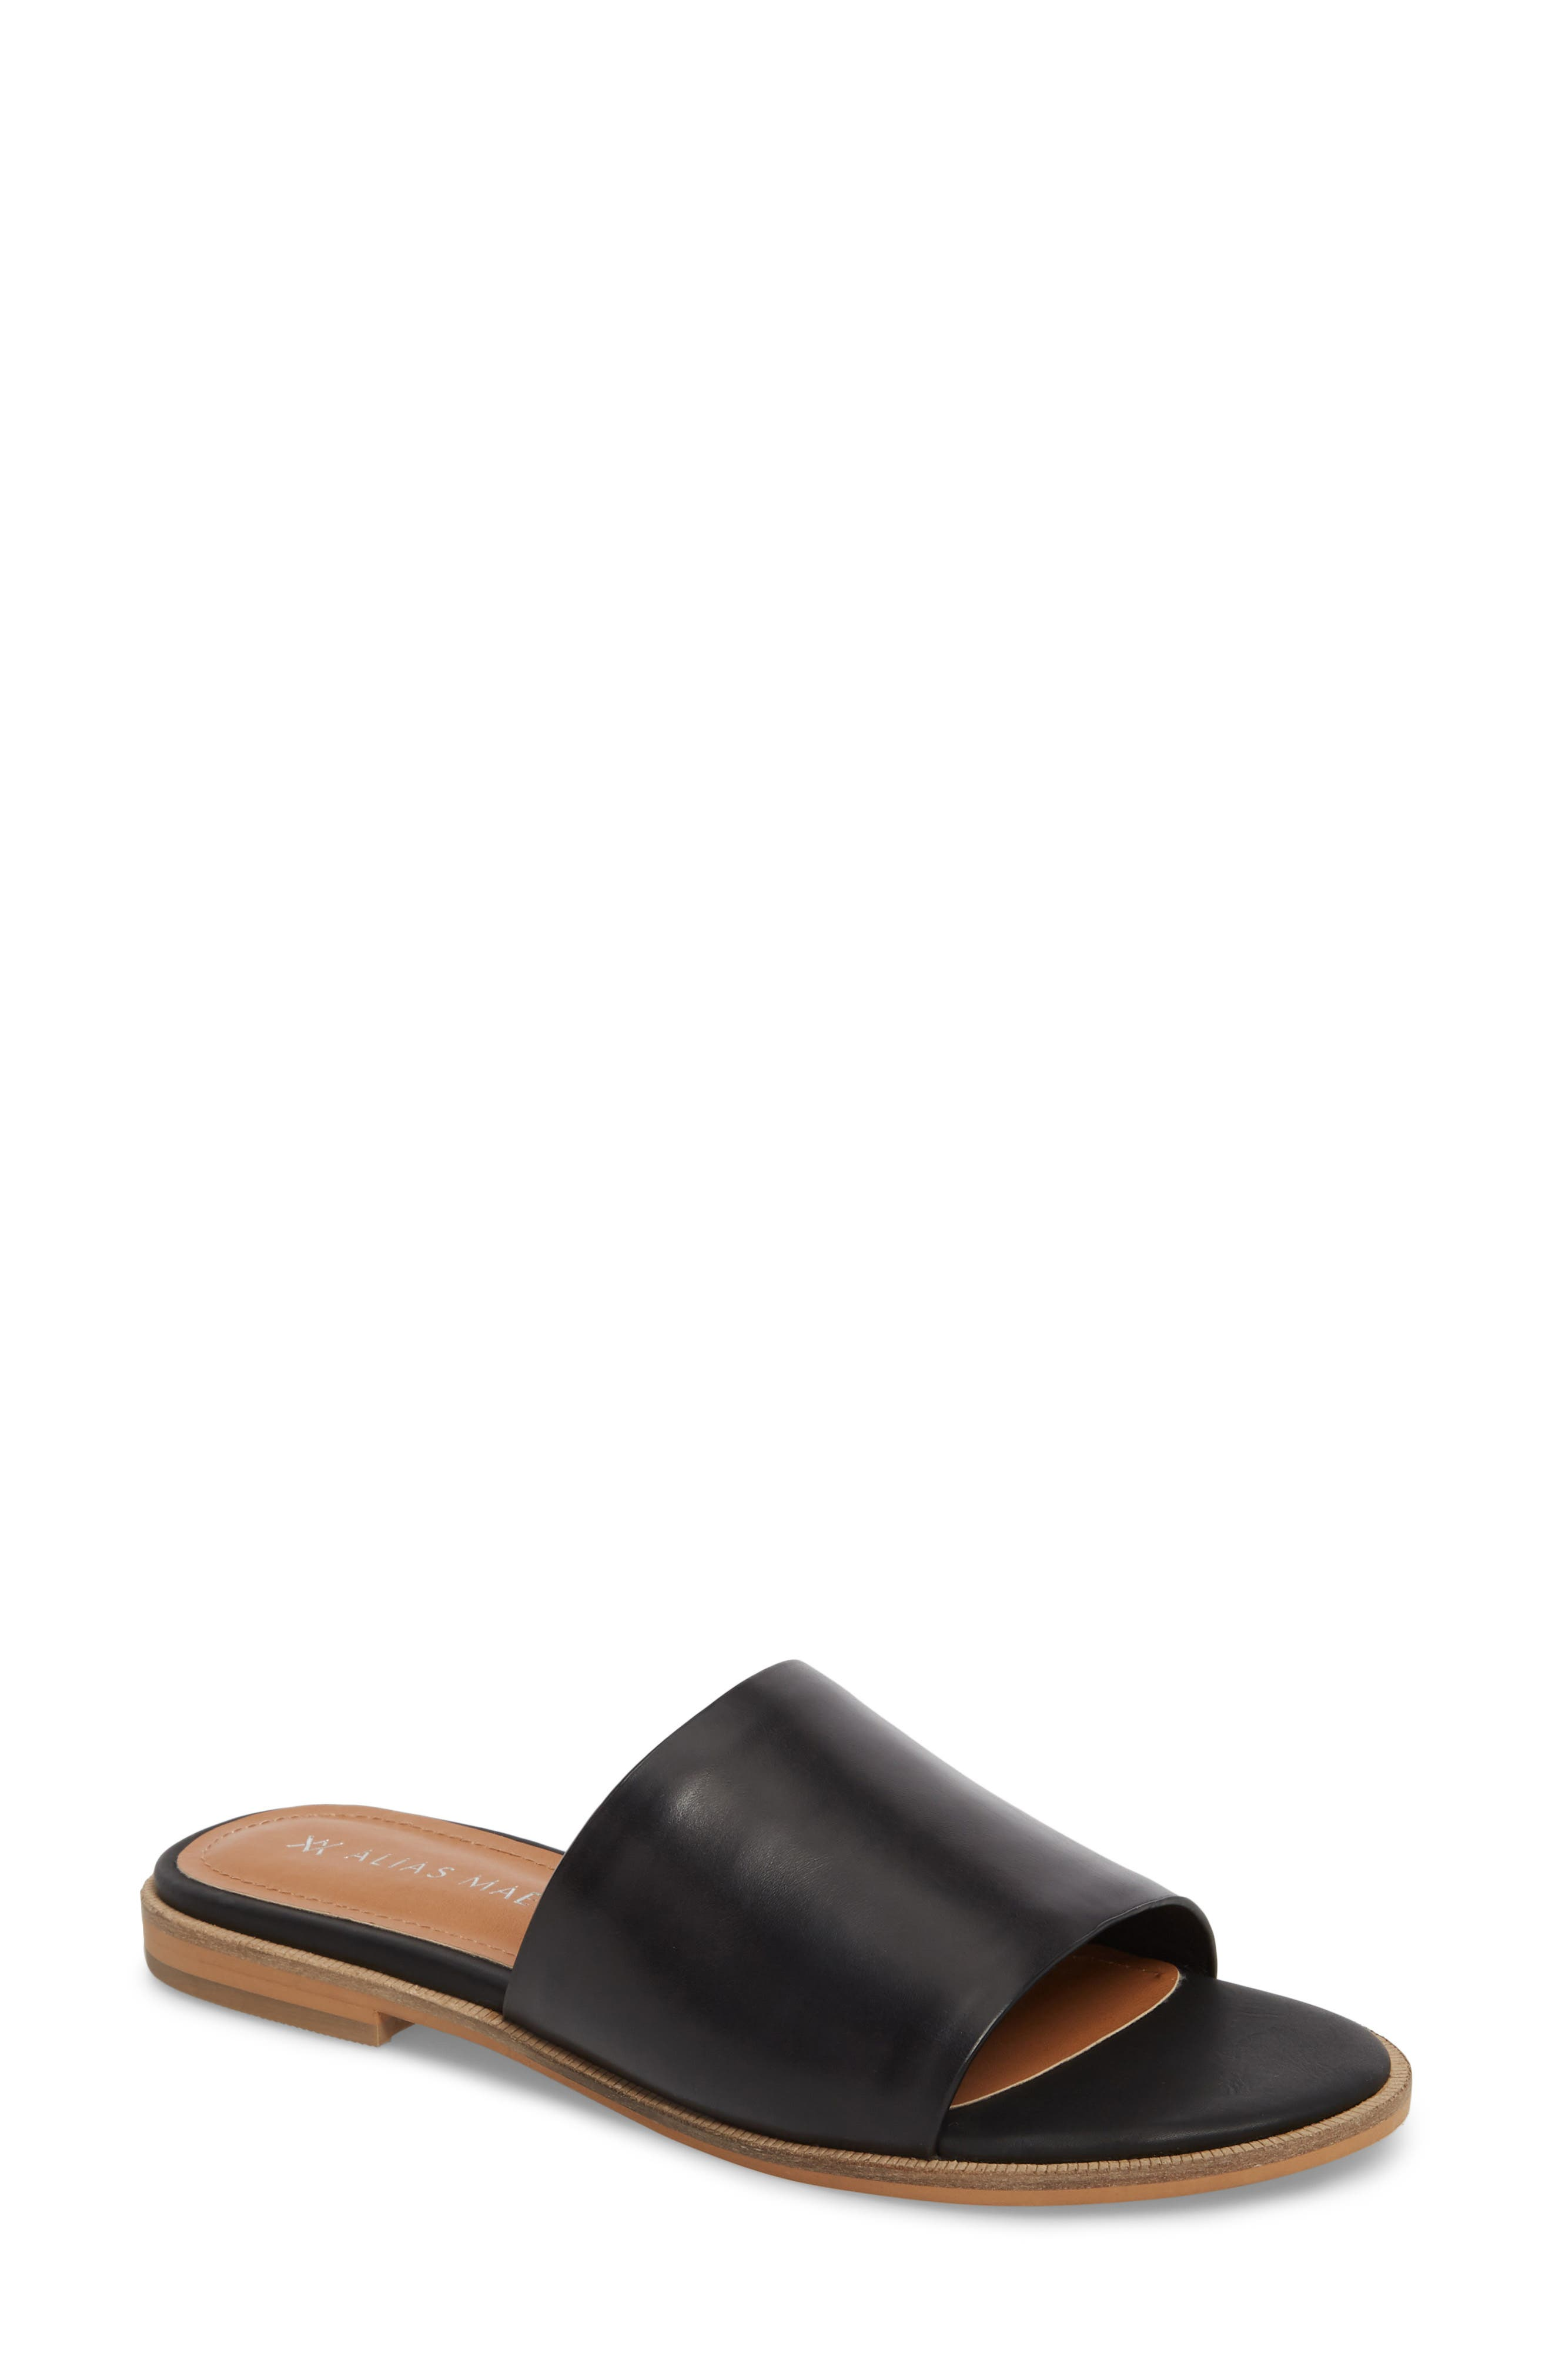 Therapy Slide Sandal,                         Main,                         color, 001